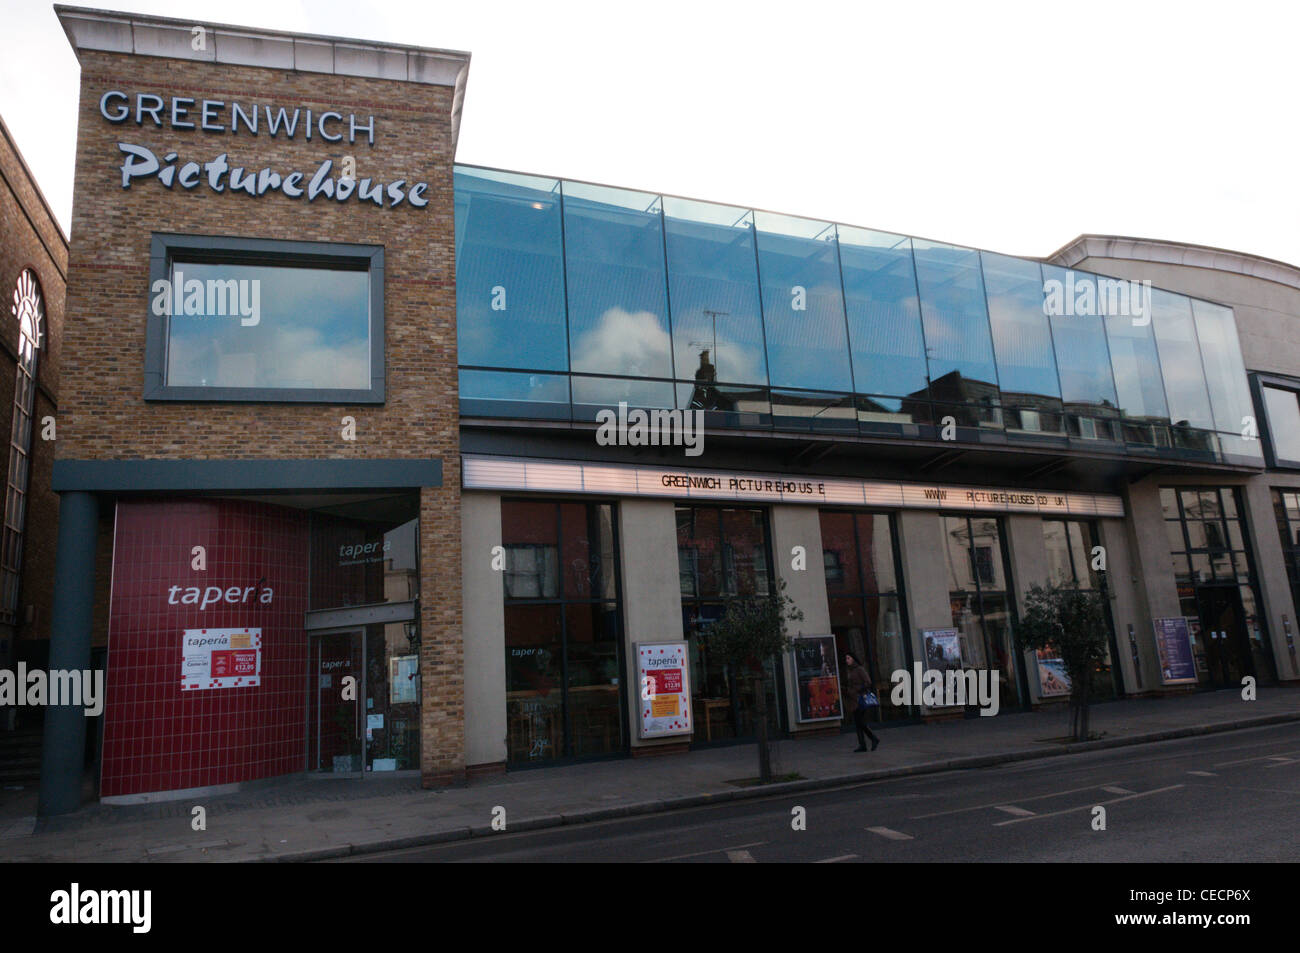 The Greenwich Picturehouse cinema in South London - Stock Image